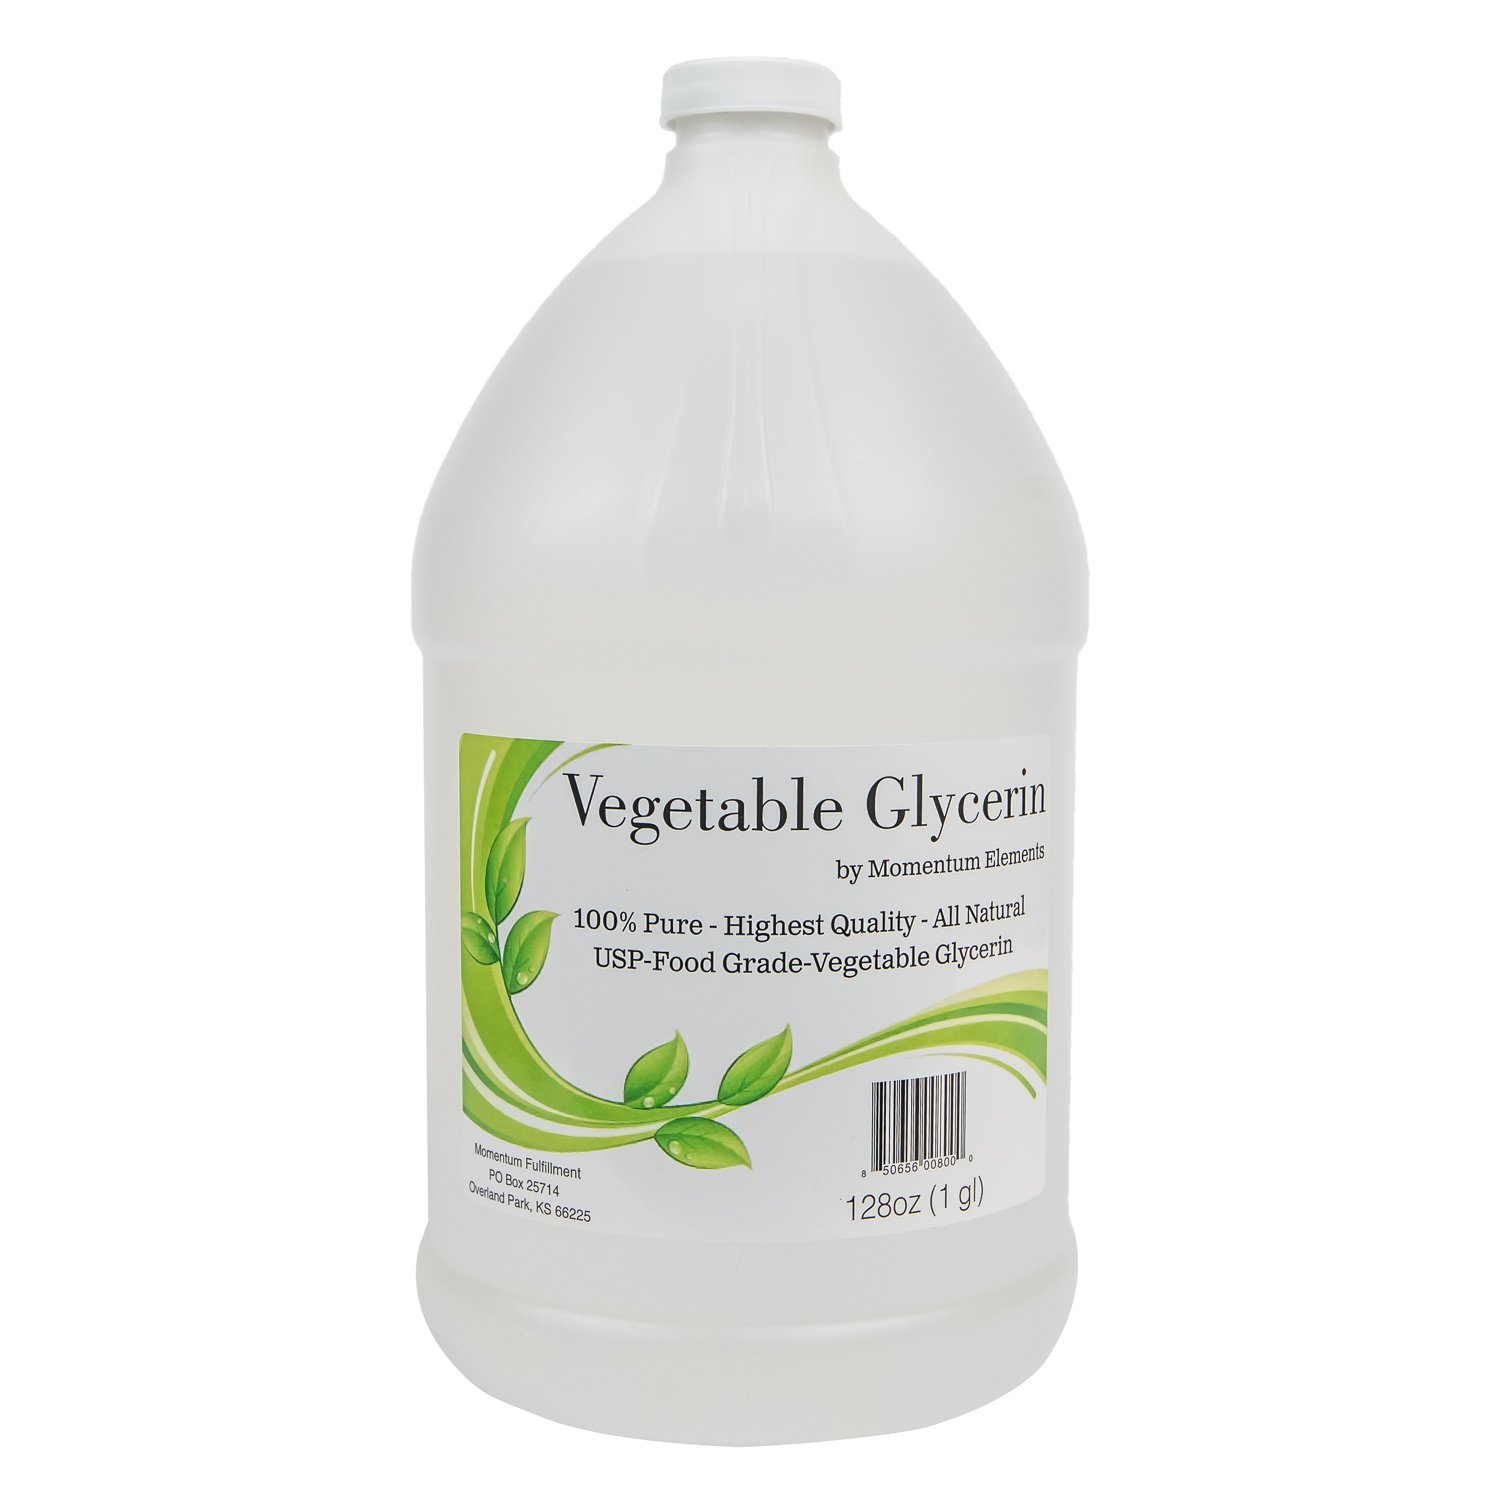 Vegetable Glycerin 99.8% Pure USP - 1 Gallon (128 oz) Kosher Food Grade All Natural Premium Quality Non GMO and Made in the USA